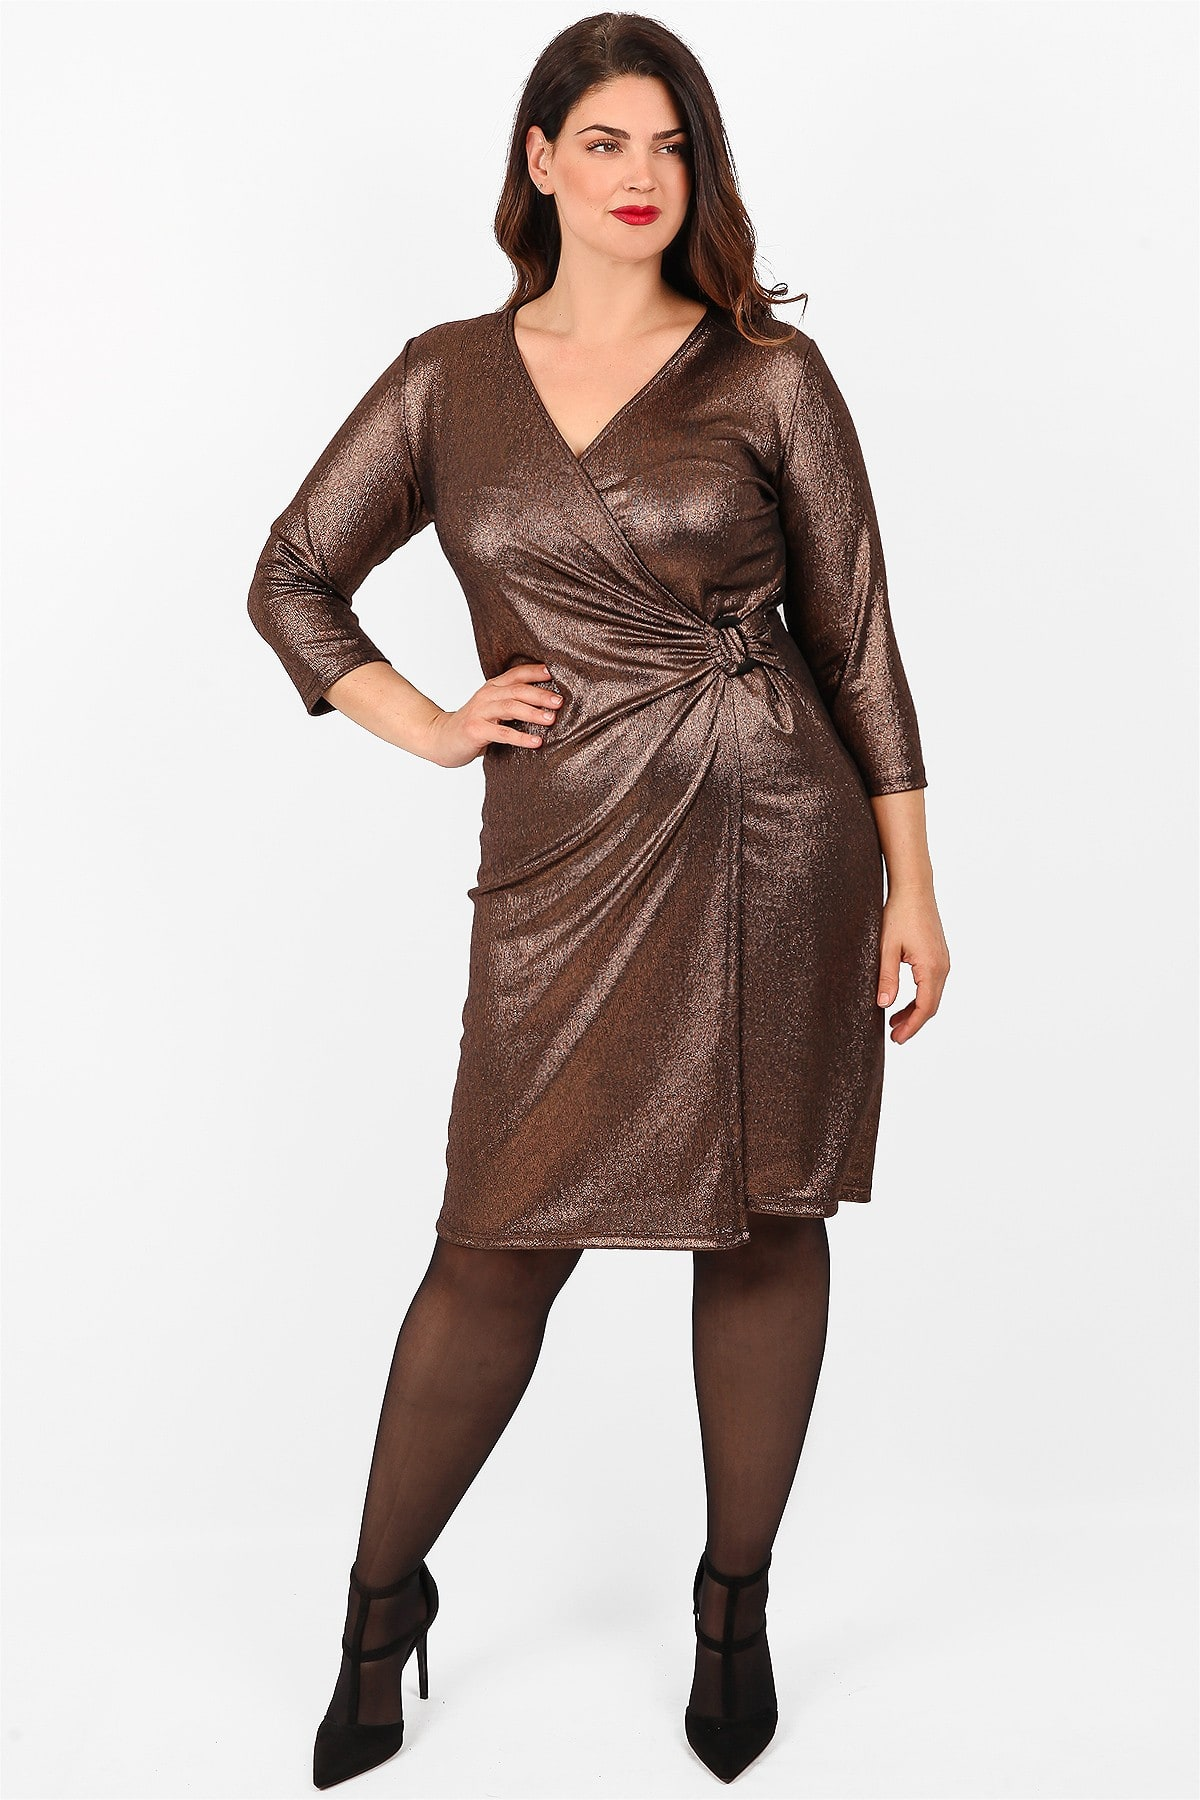 Wrap foil with metallic view midi dress